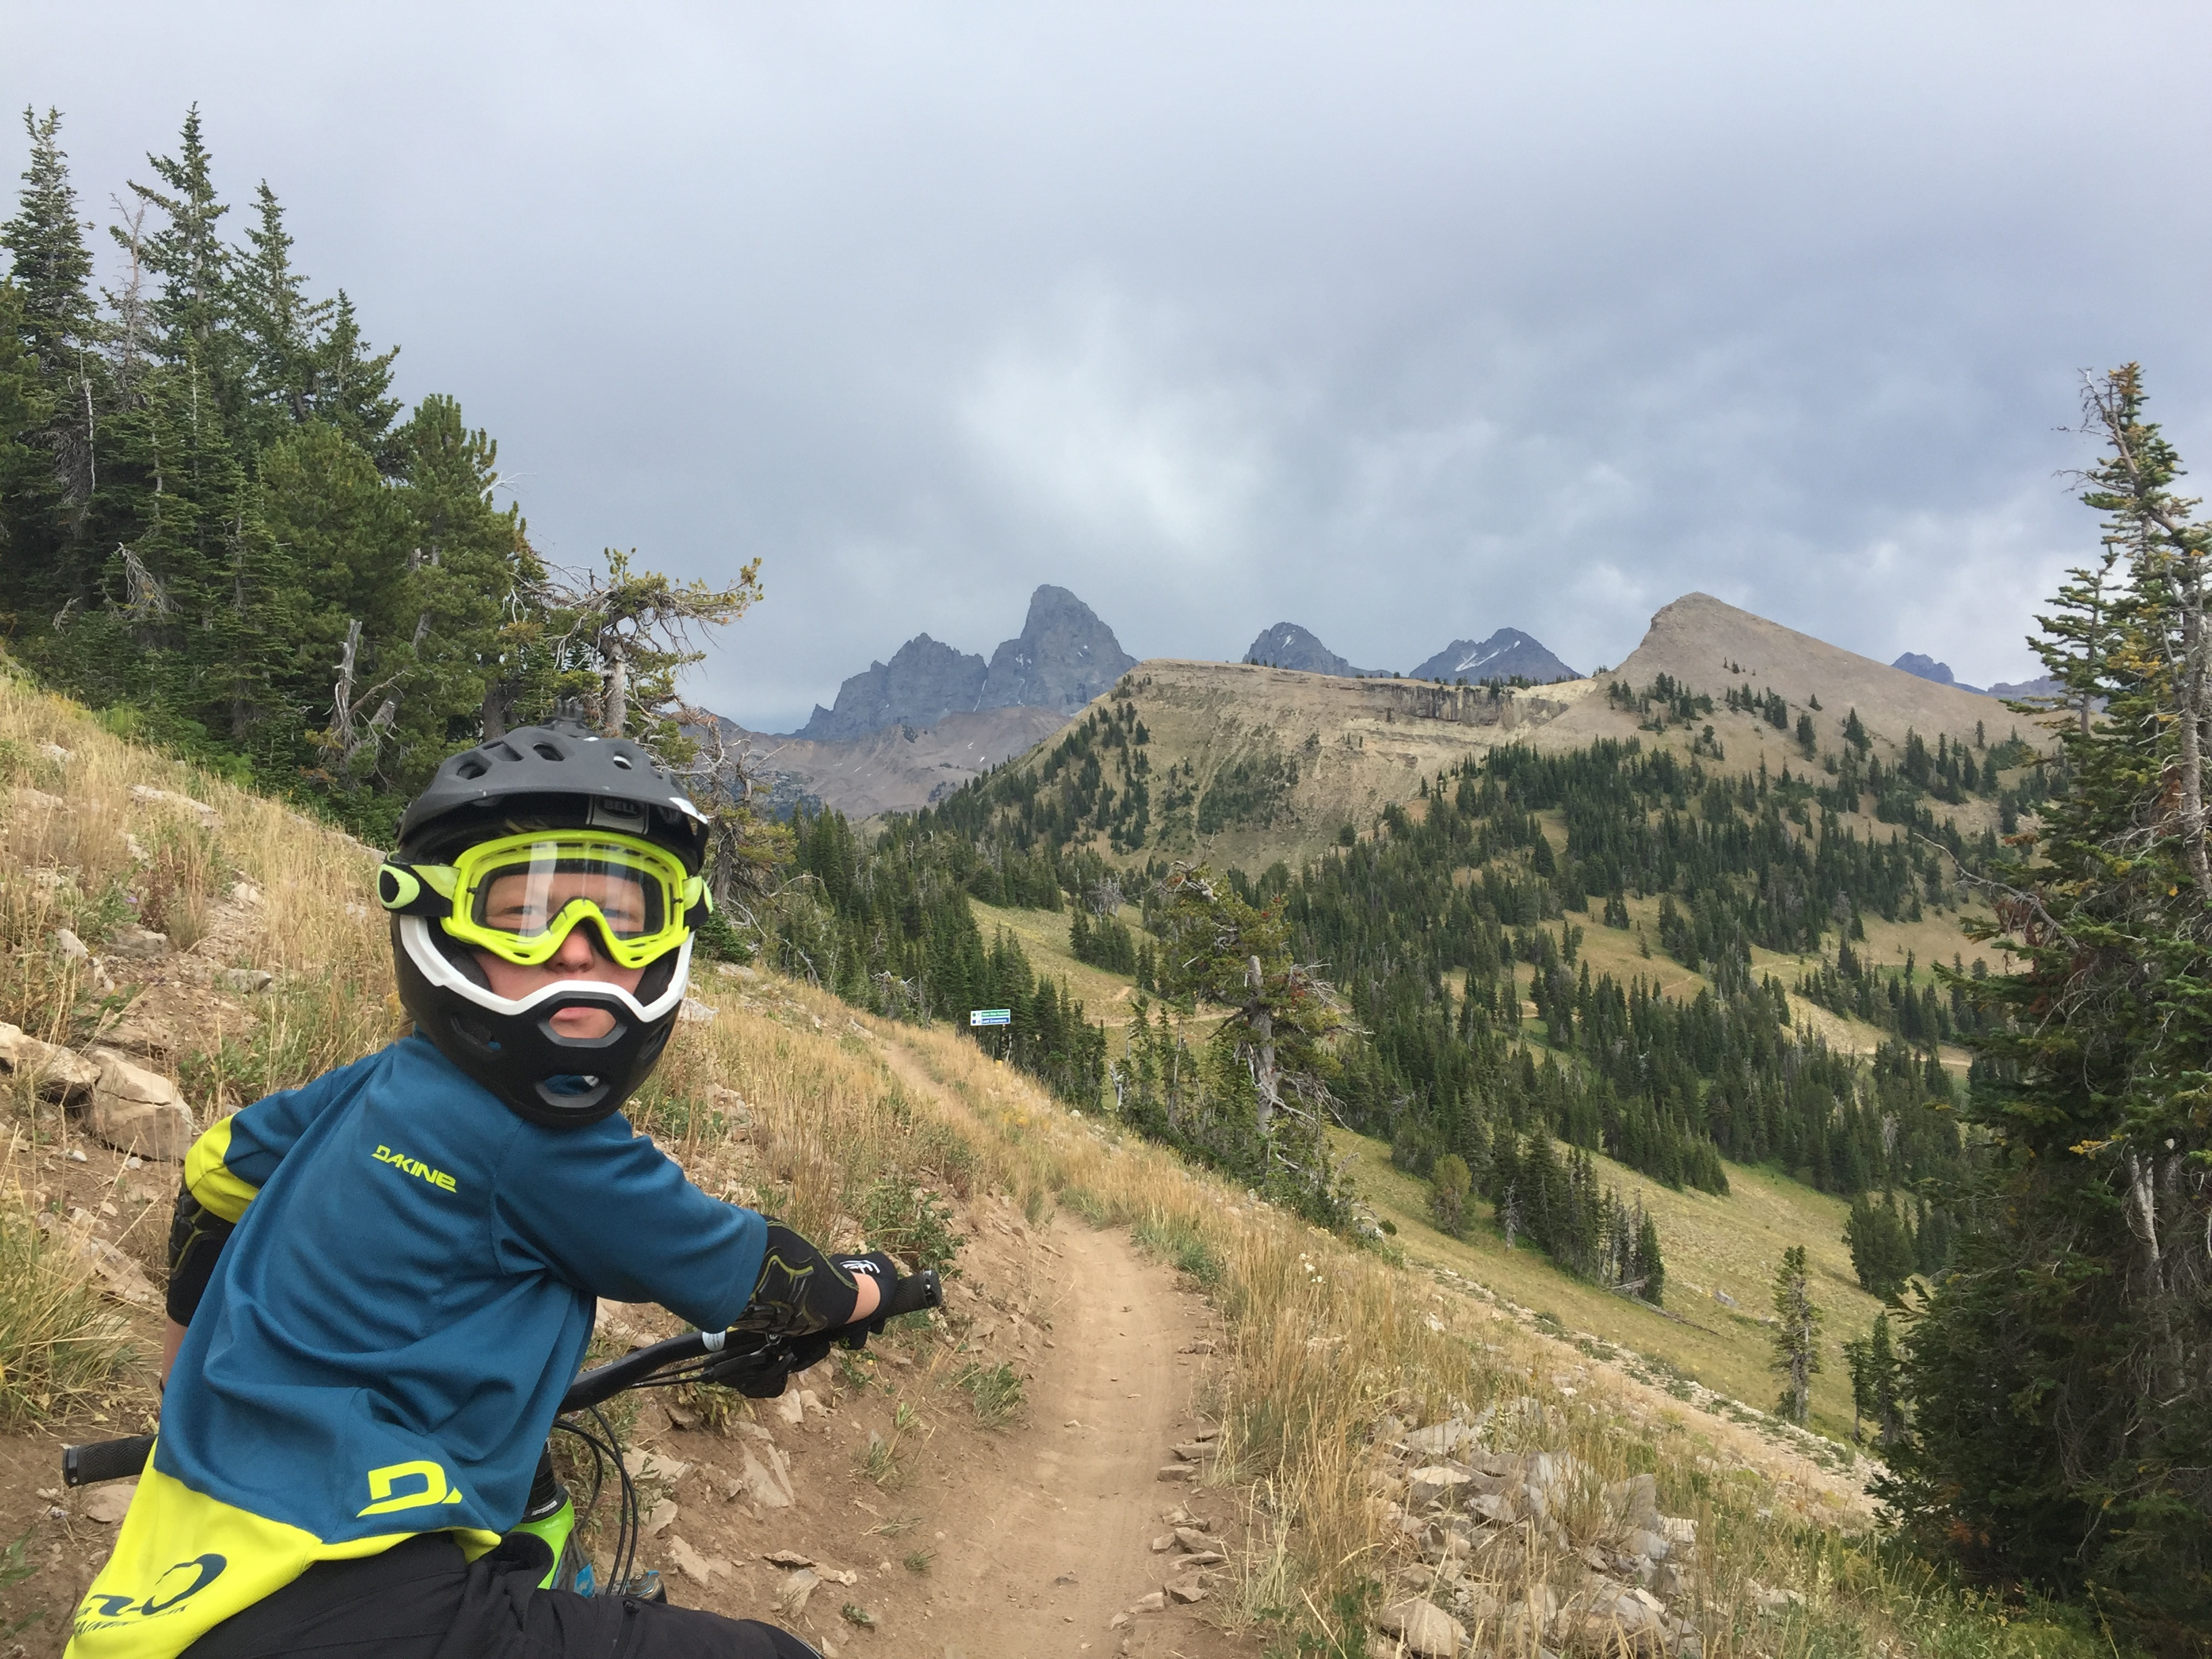 Just off the lift on Grand Traverse you get a great view of the Tetons.